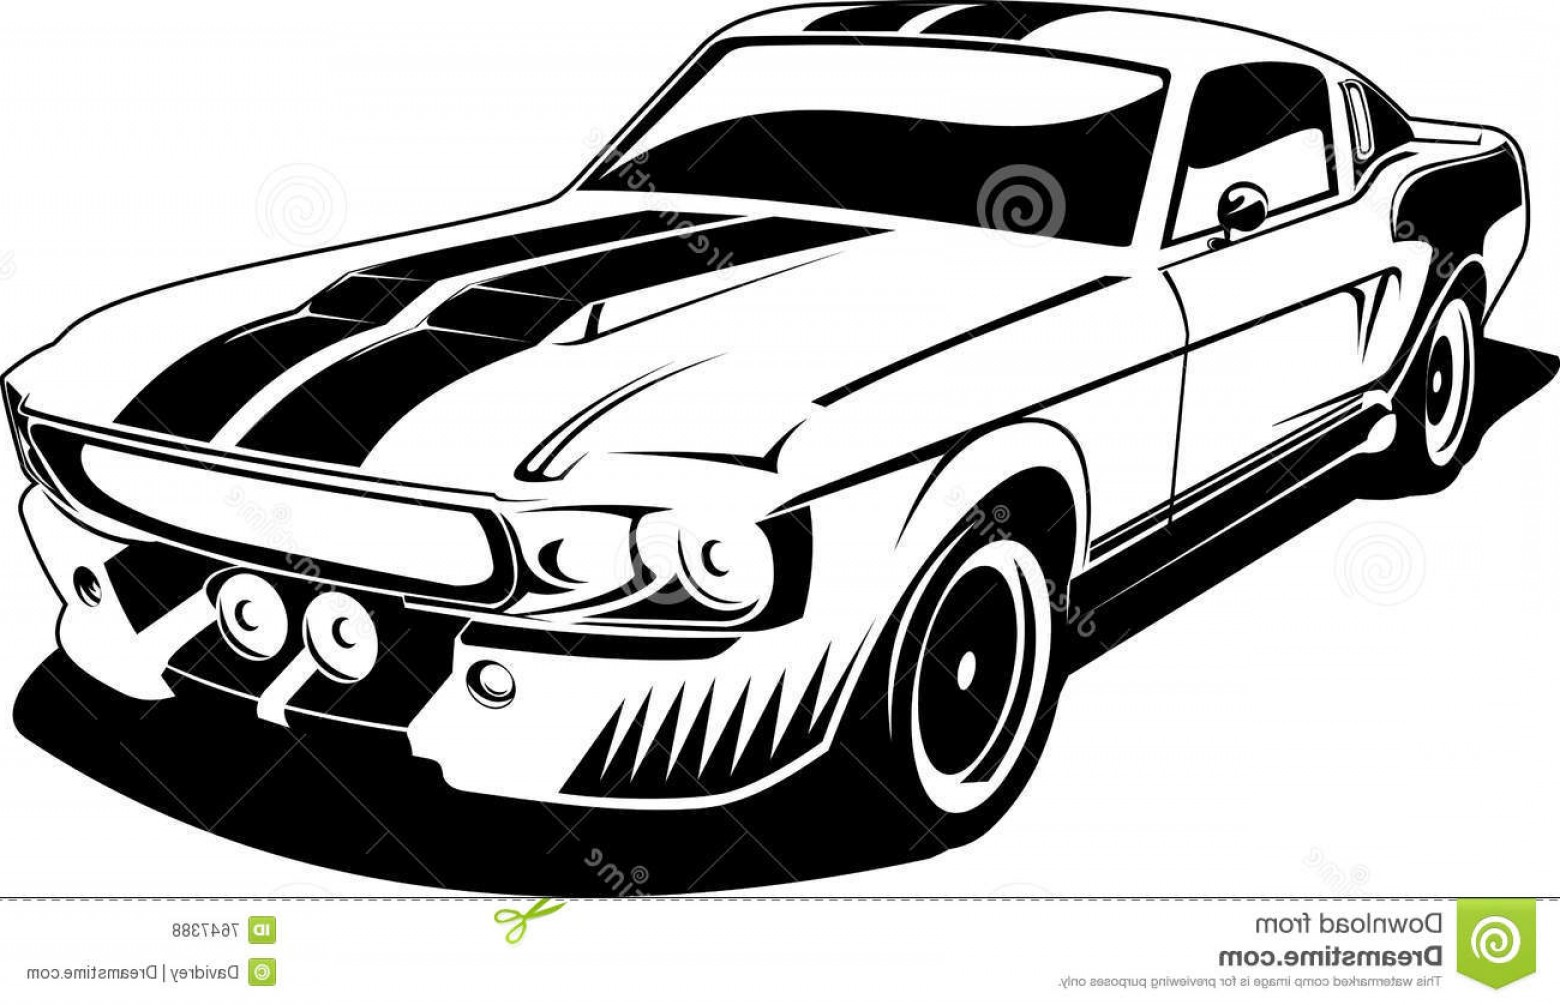 Ford Vector Art: Royalty Free Stock Photos Black White Ford Mustang Image